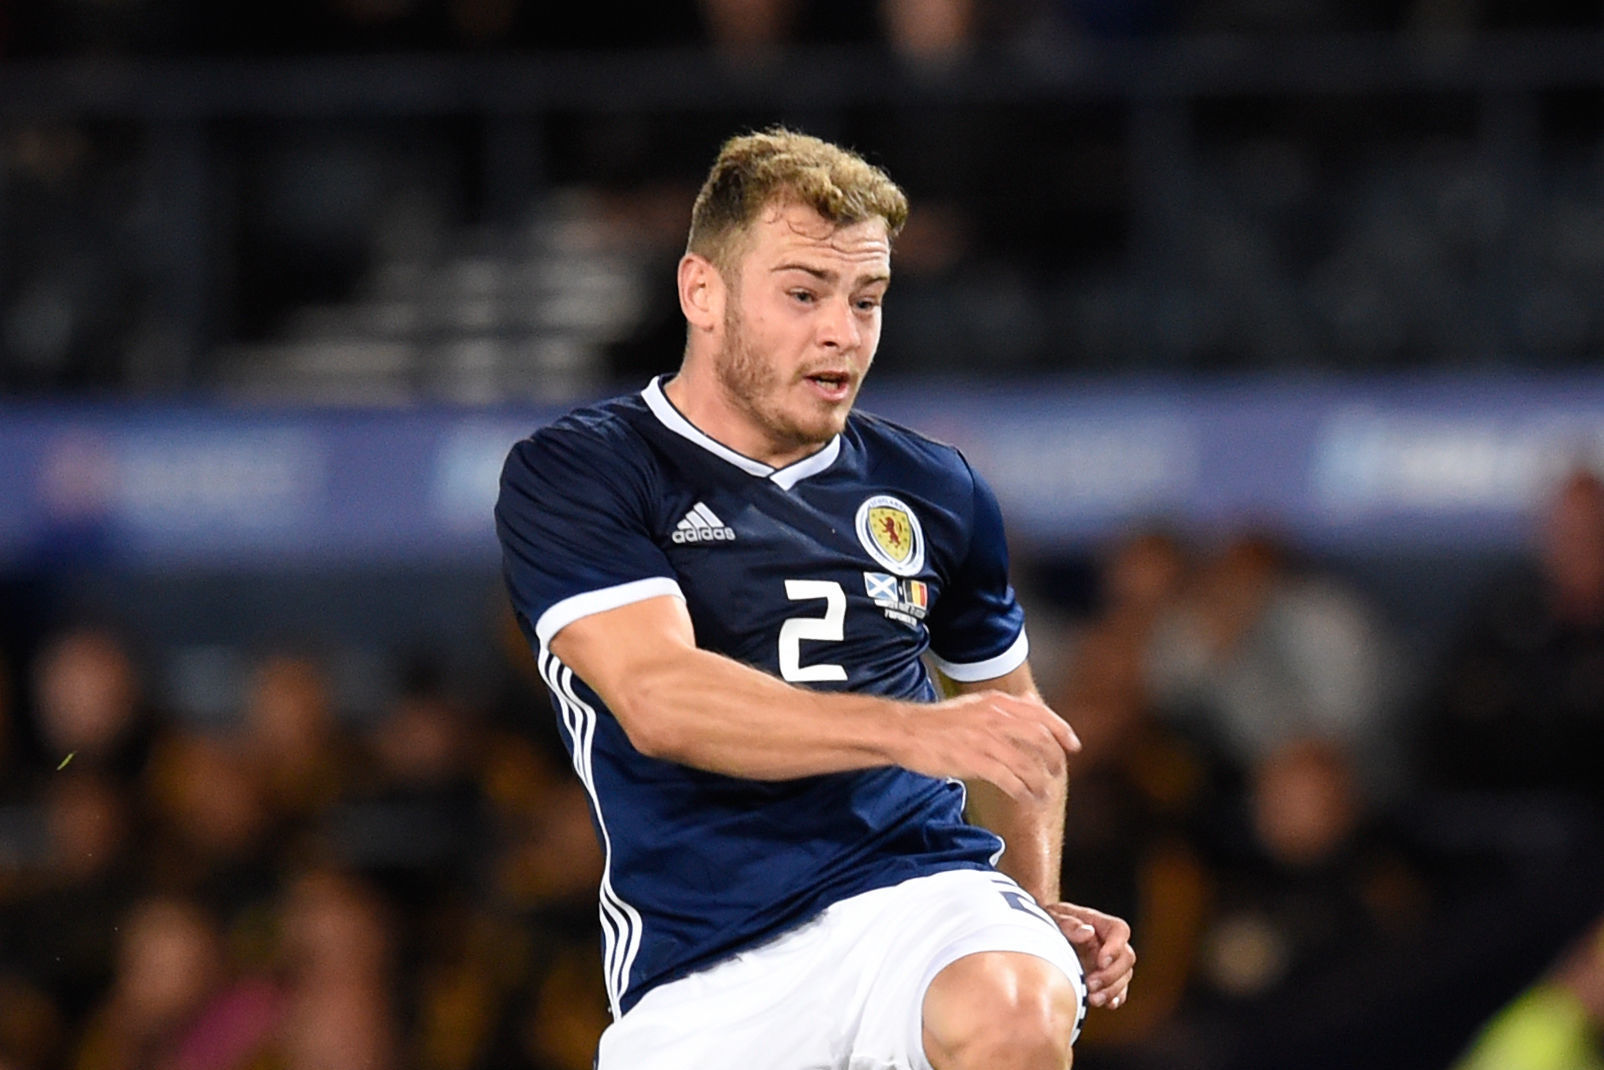 Cherries winger Fraser included in Scotland squad